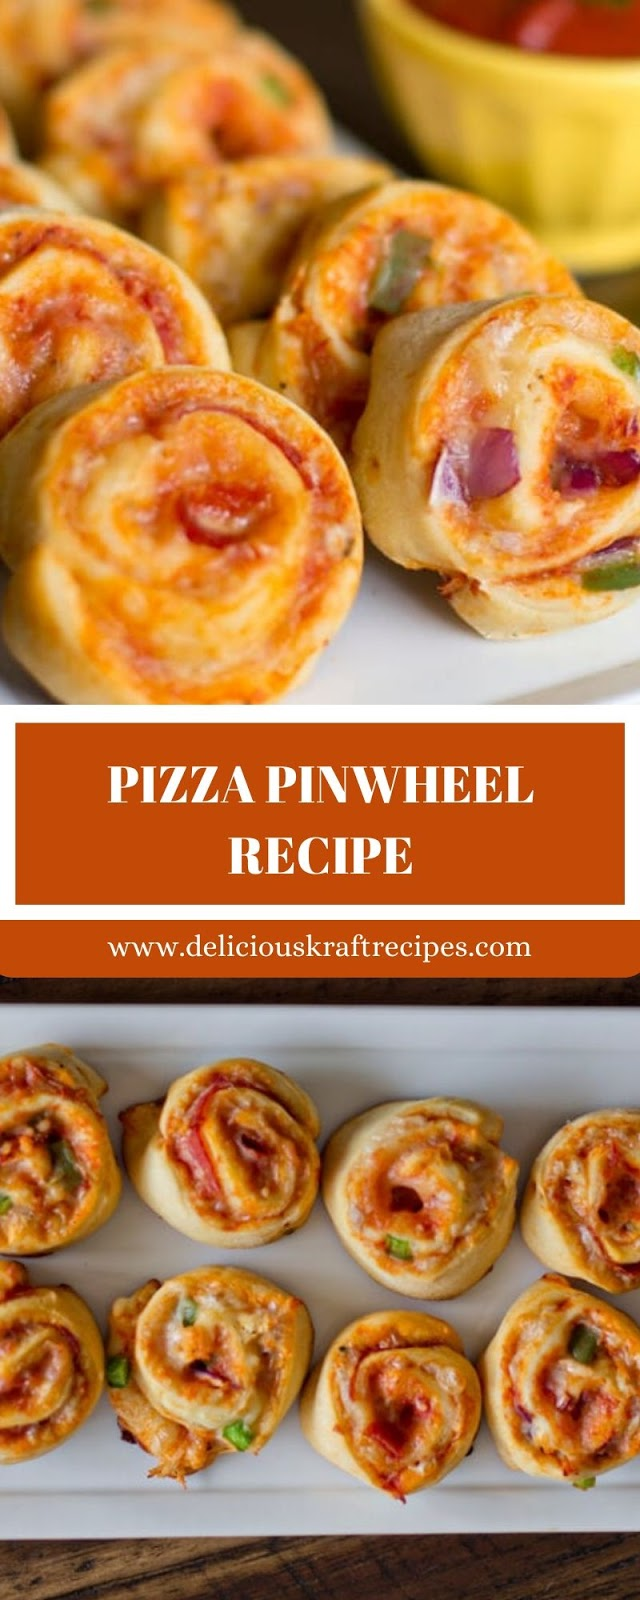 PIZZA PINWHEEL RECIPE